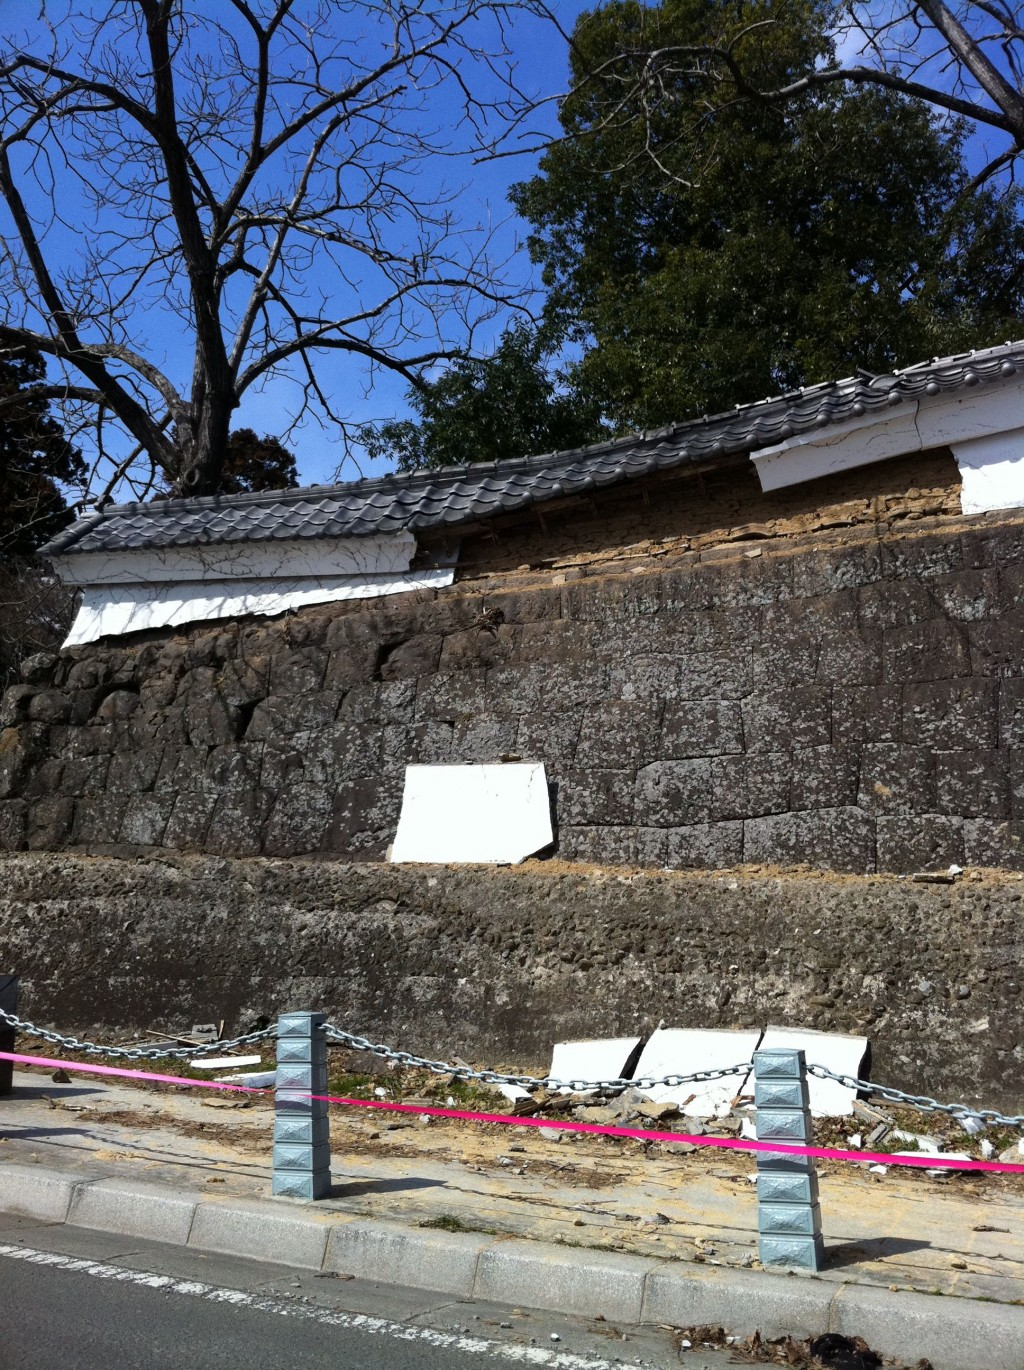 Damage to the walls of Sendai castle after 11 March eartchquake.